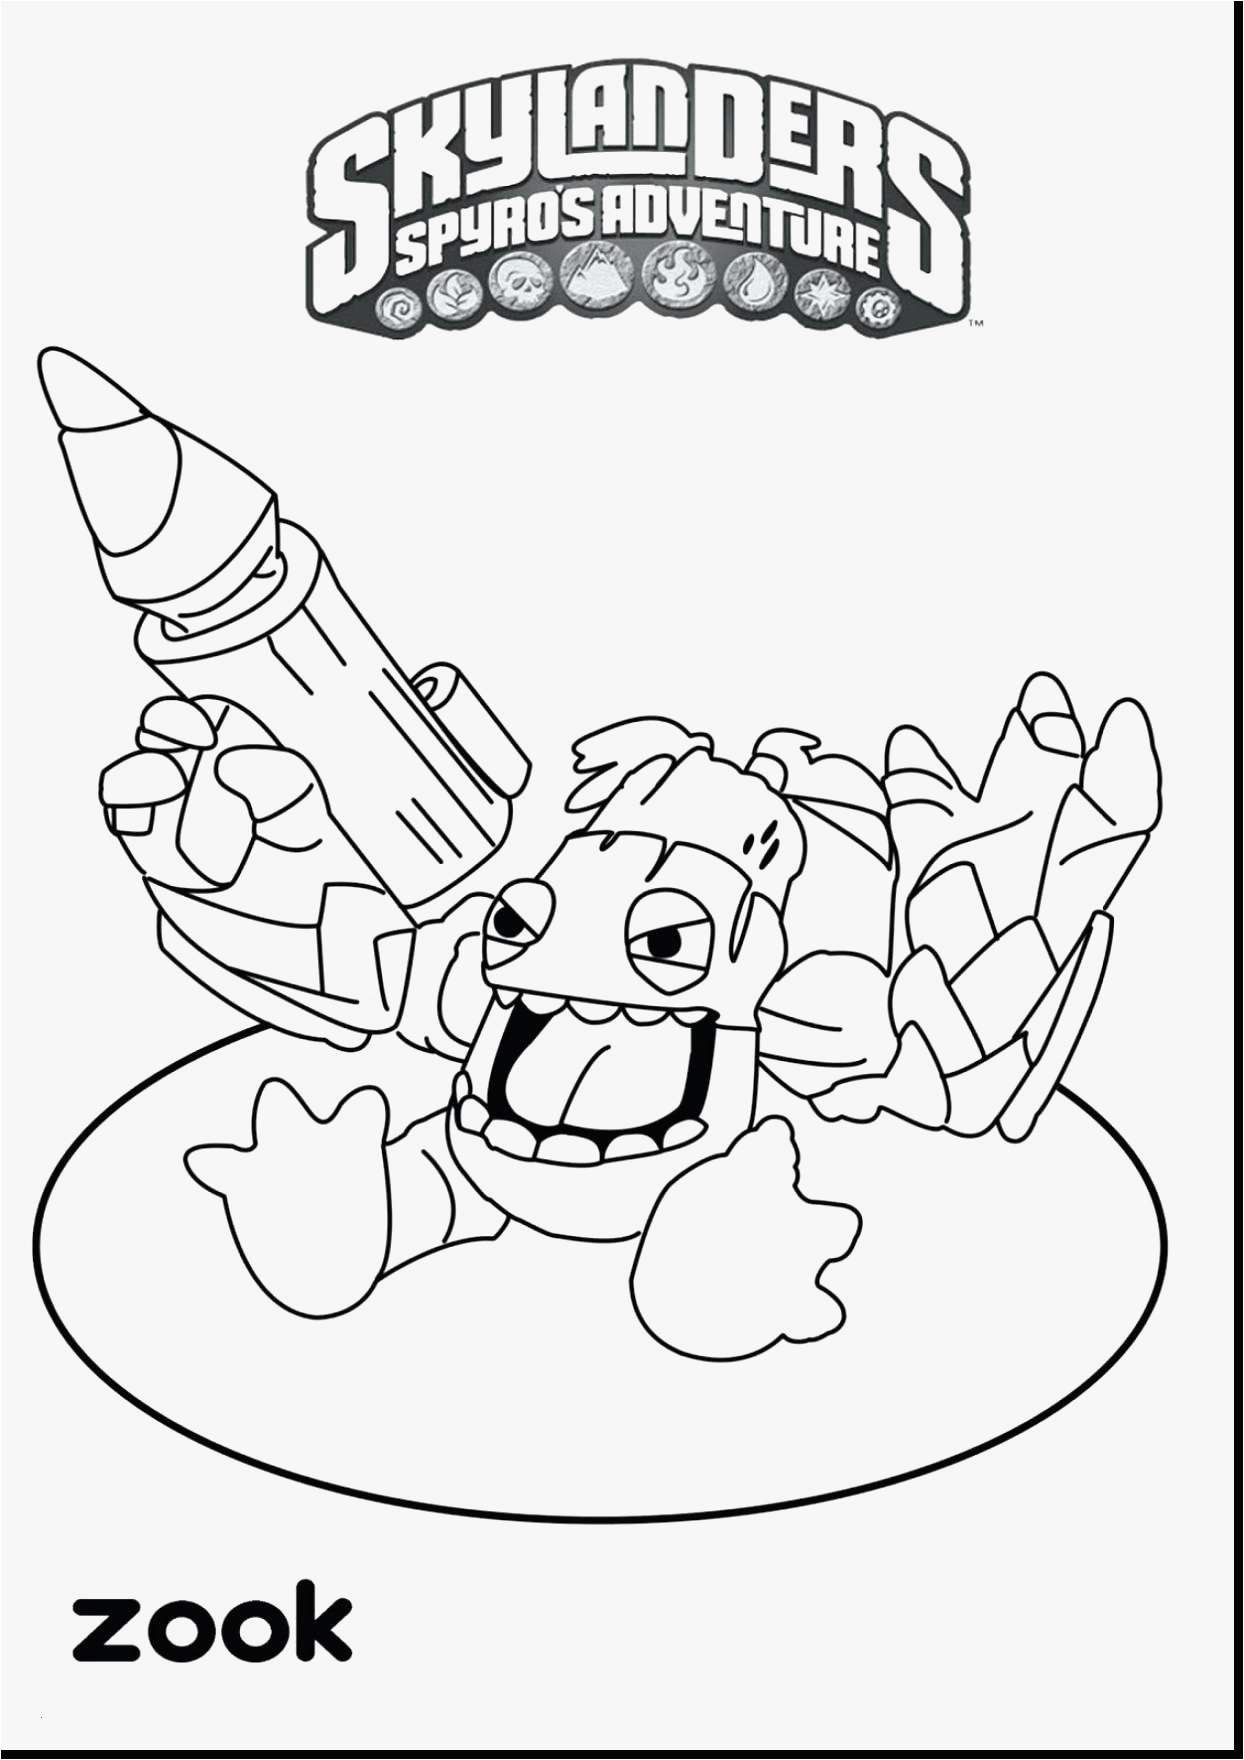 bible coloring pages for kids Download-Preschool Bible Coloring Pages Best 25 Best Free Bible Coloring Pages Free Download Preschool 15-k